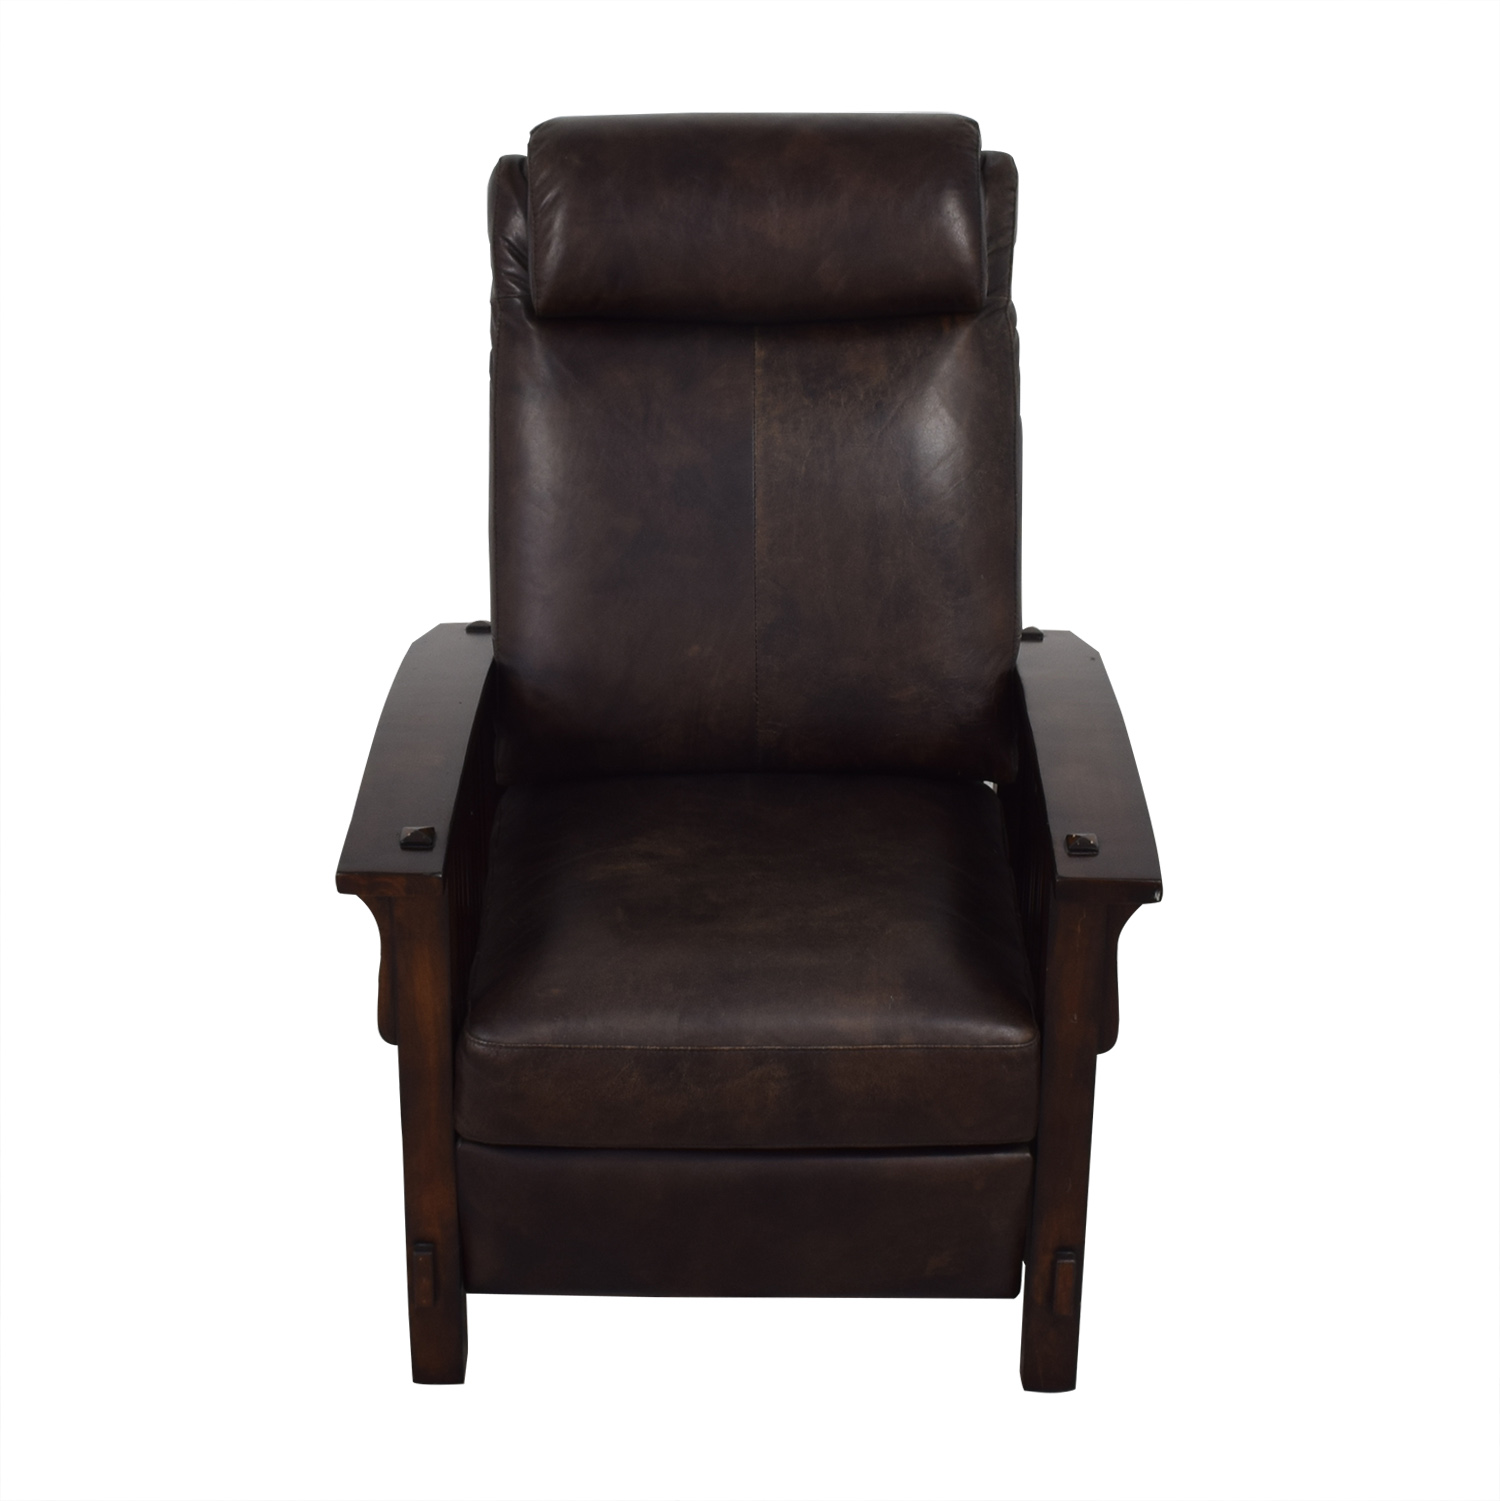 Recliner Chair with Wood Frame price